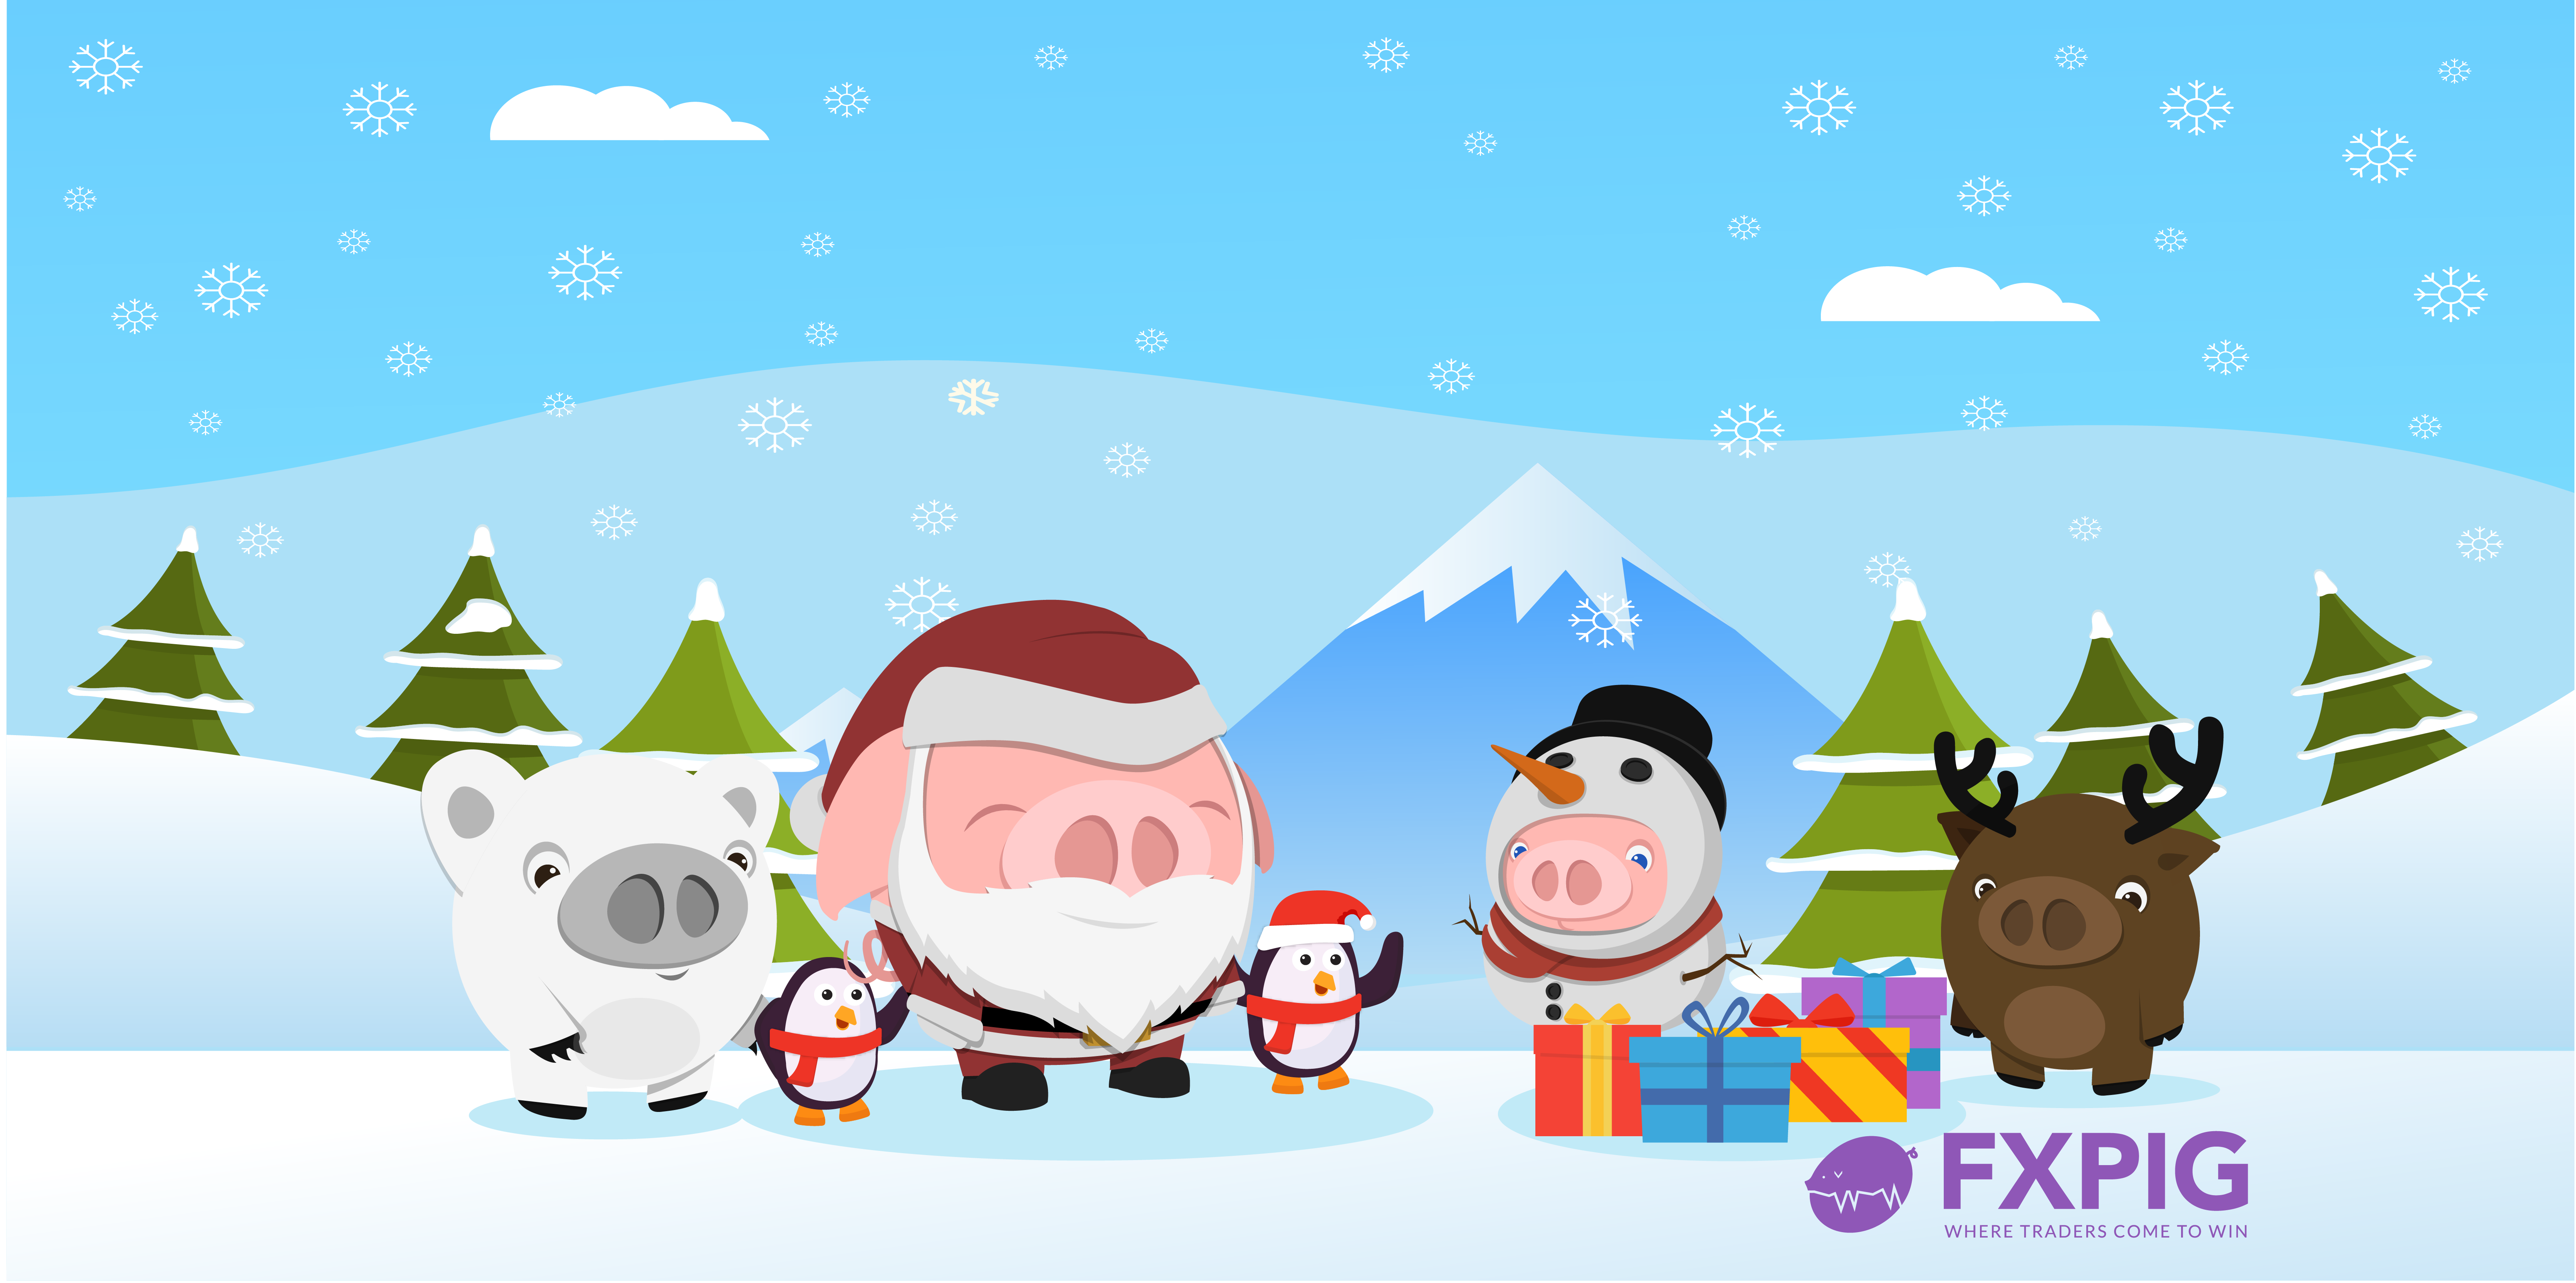 Forex_Trading_Fx_Trader_FXPIG_Christmas_NewYear